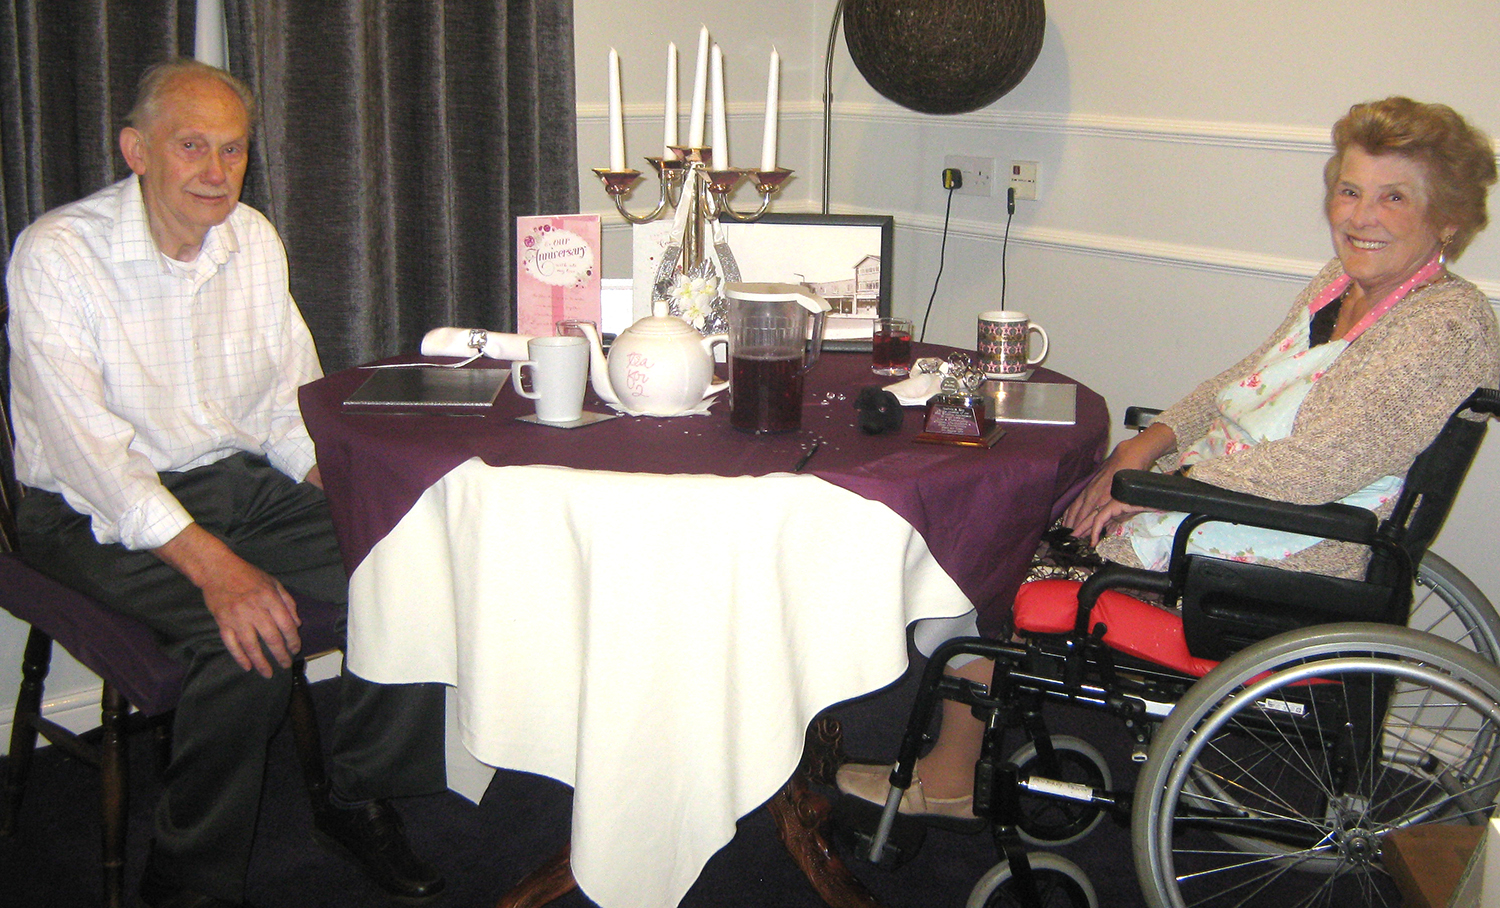 Care Home Surprise for Couple's Anniversary